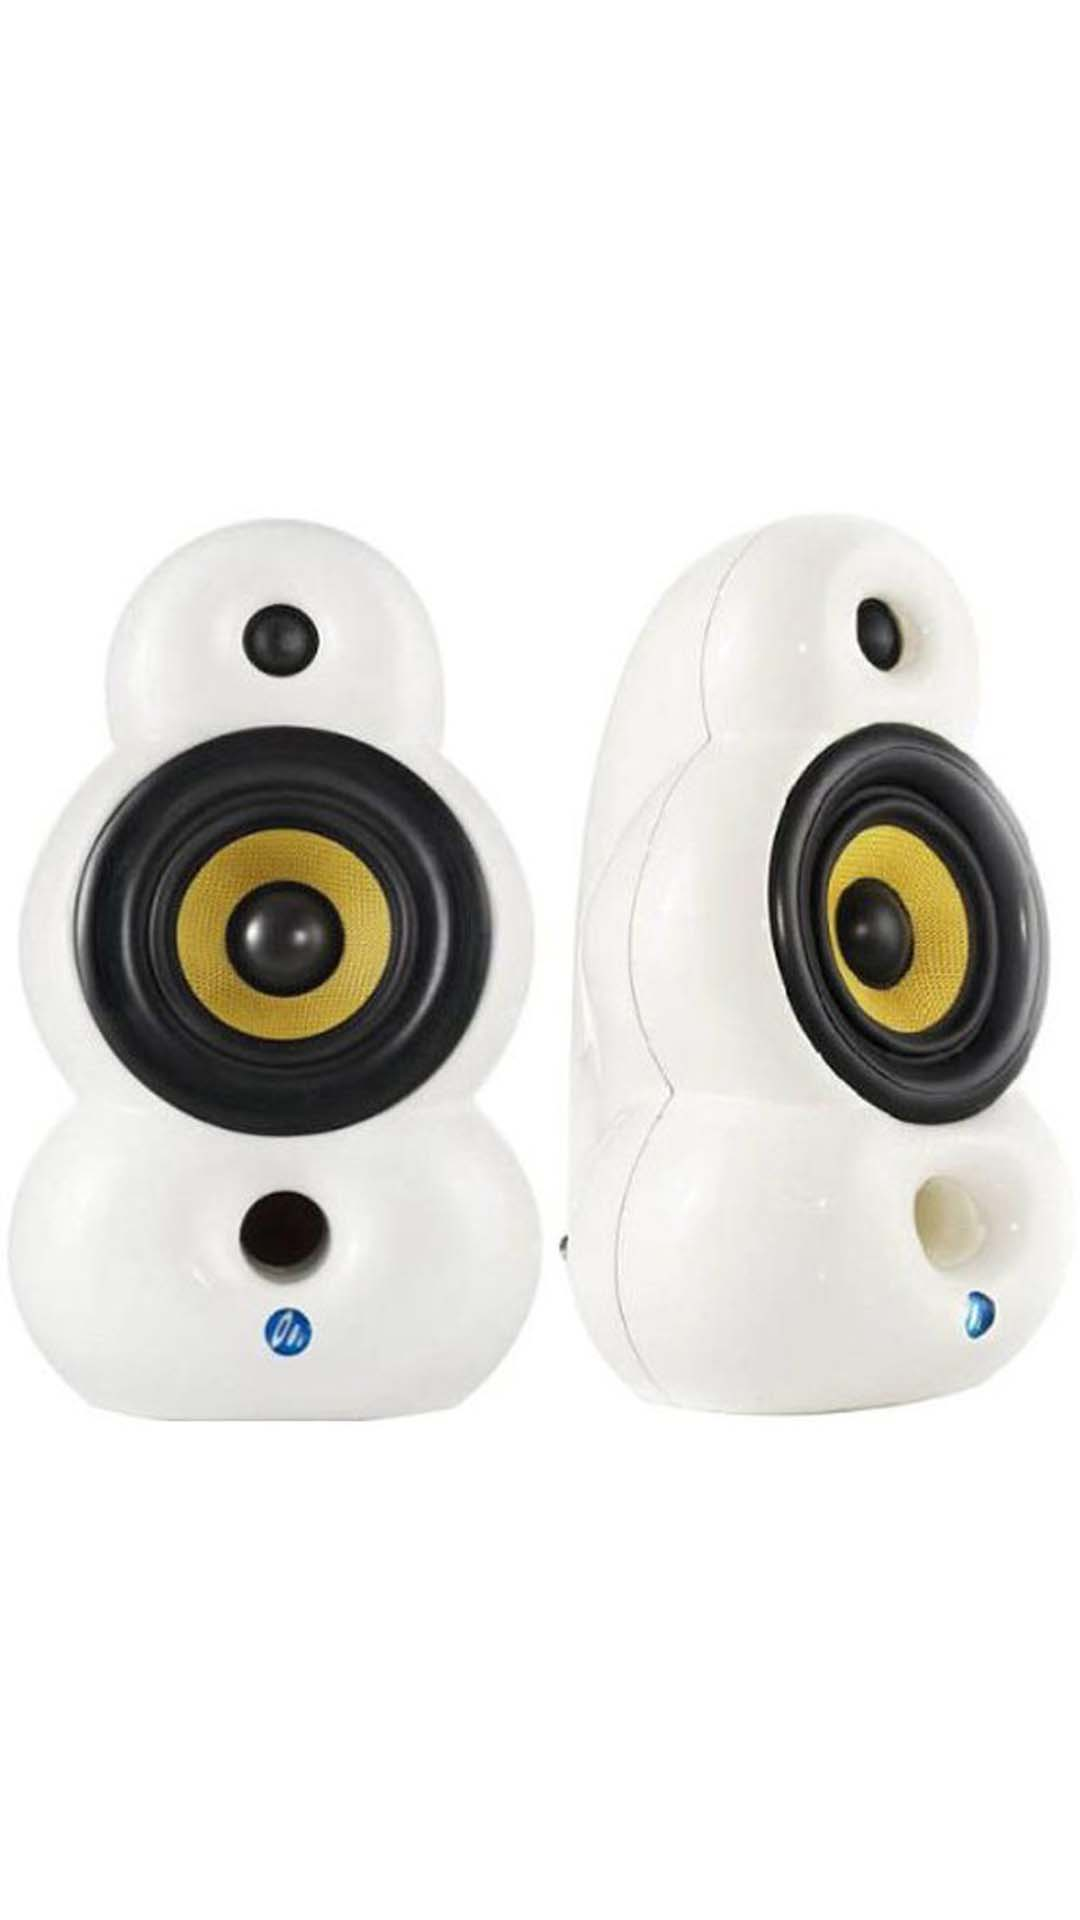 Podspeakers SmallPod HiFi Home Audio Speaker (White)